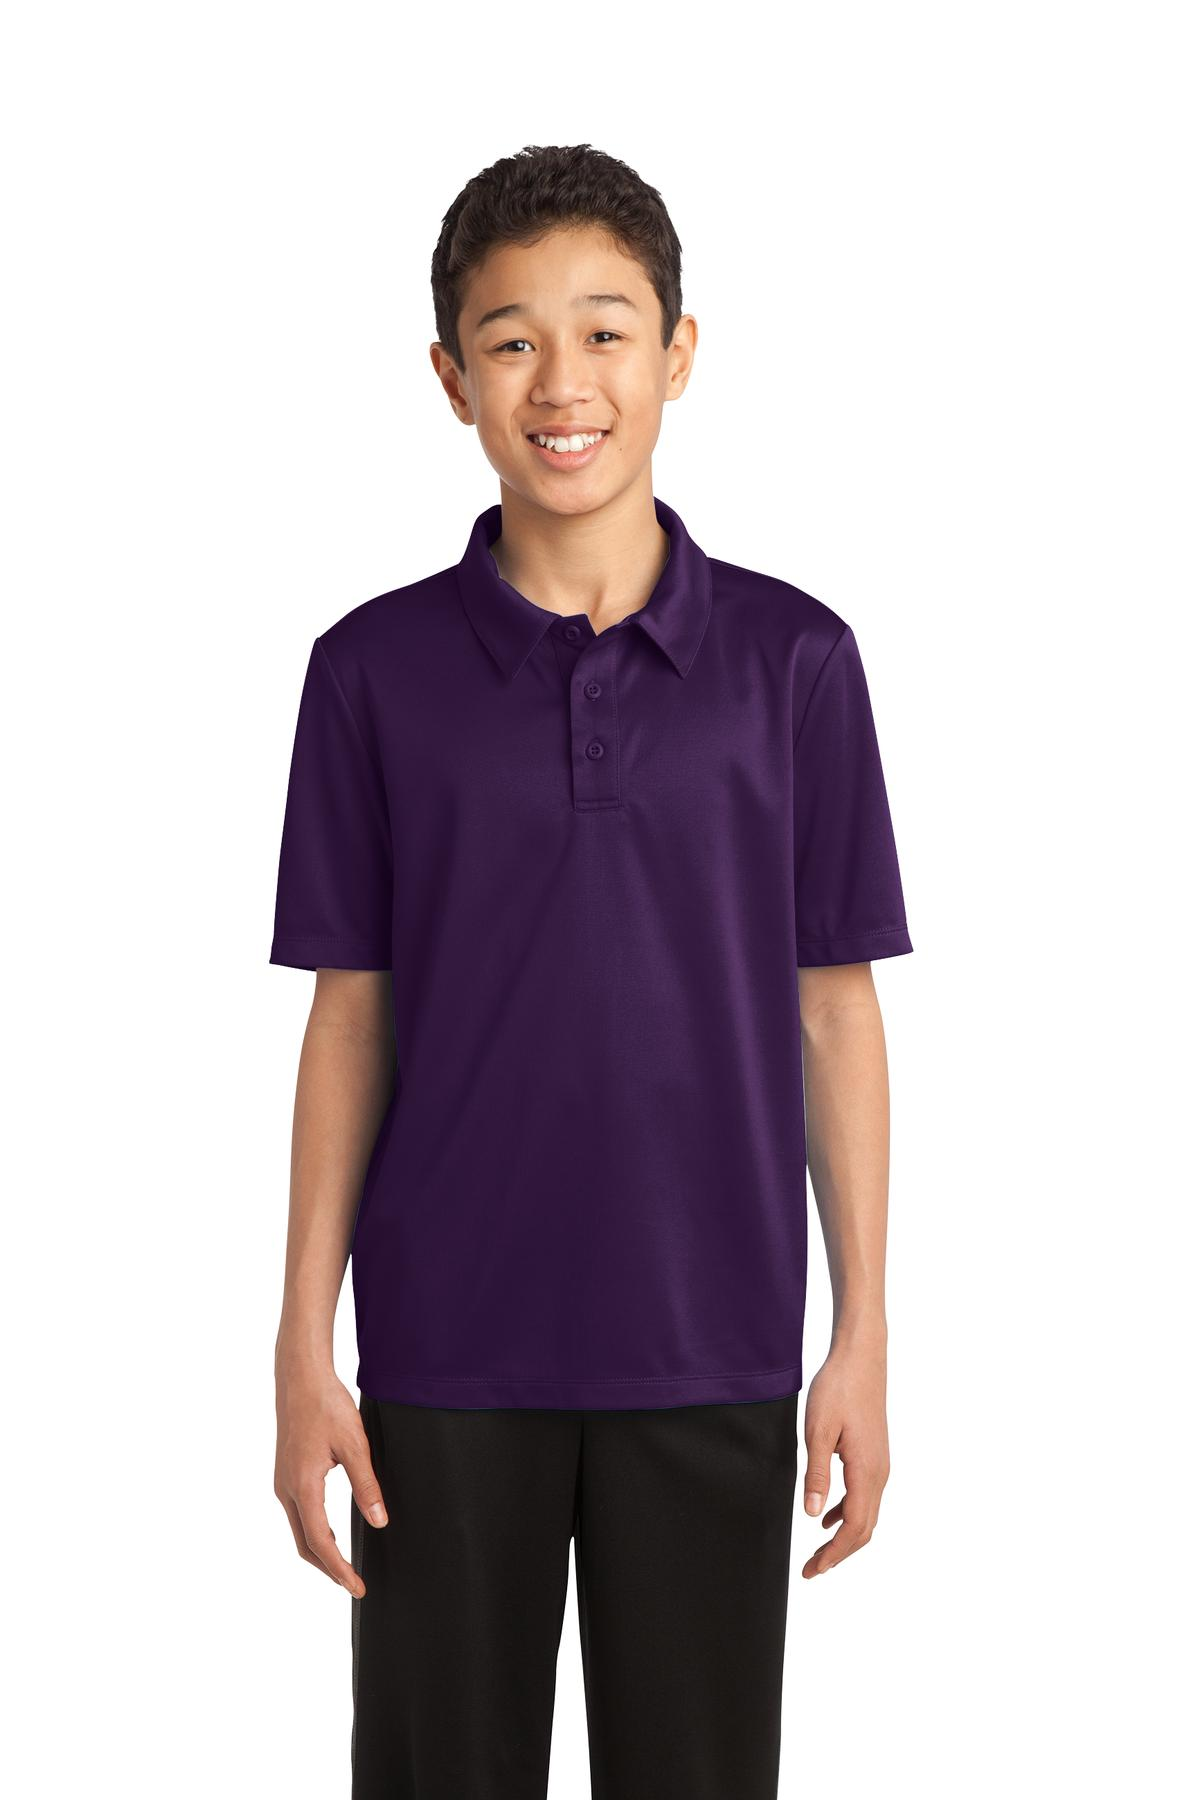 Port Authority ®  Youth Silk Touch™ Performance Polo. Y540 - Bright Purple